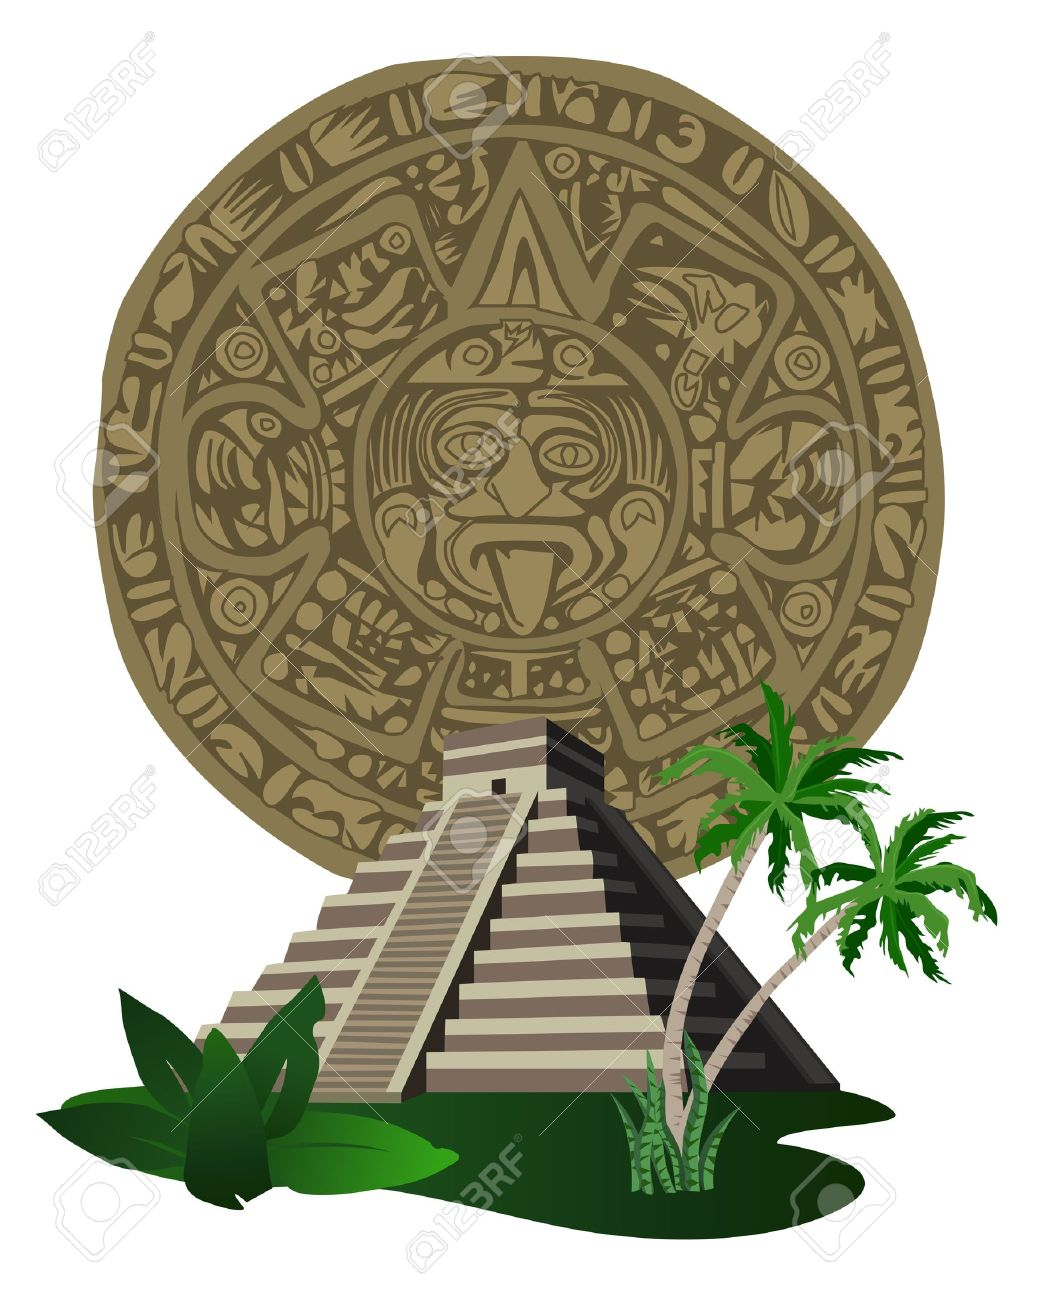 Illustration With Ancient Mayan Pyramid And Calendar Royalty Free ...